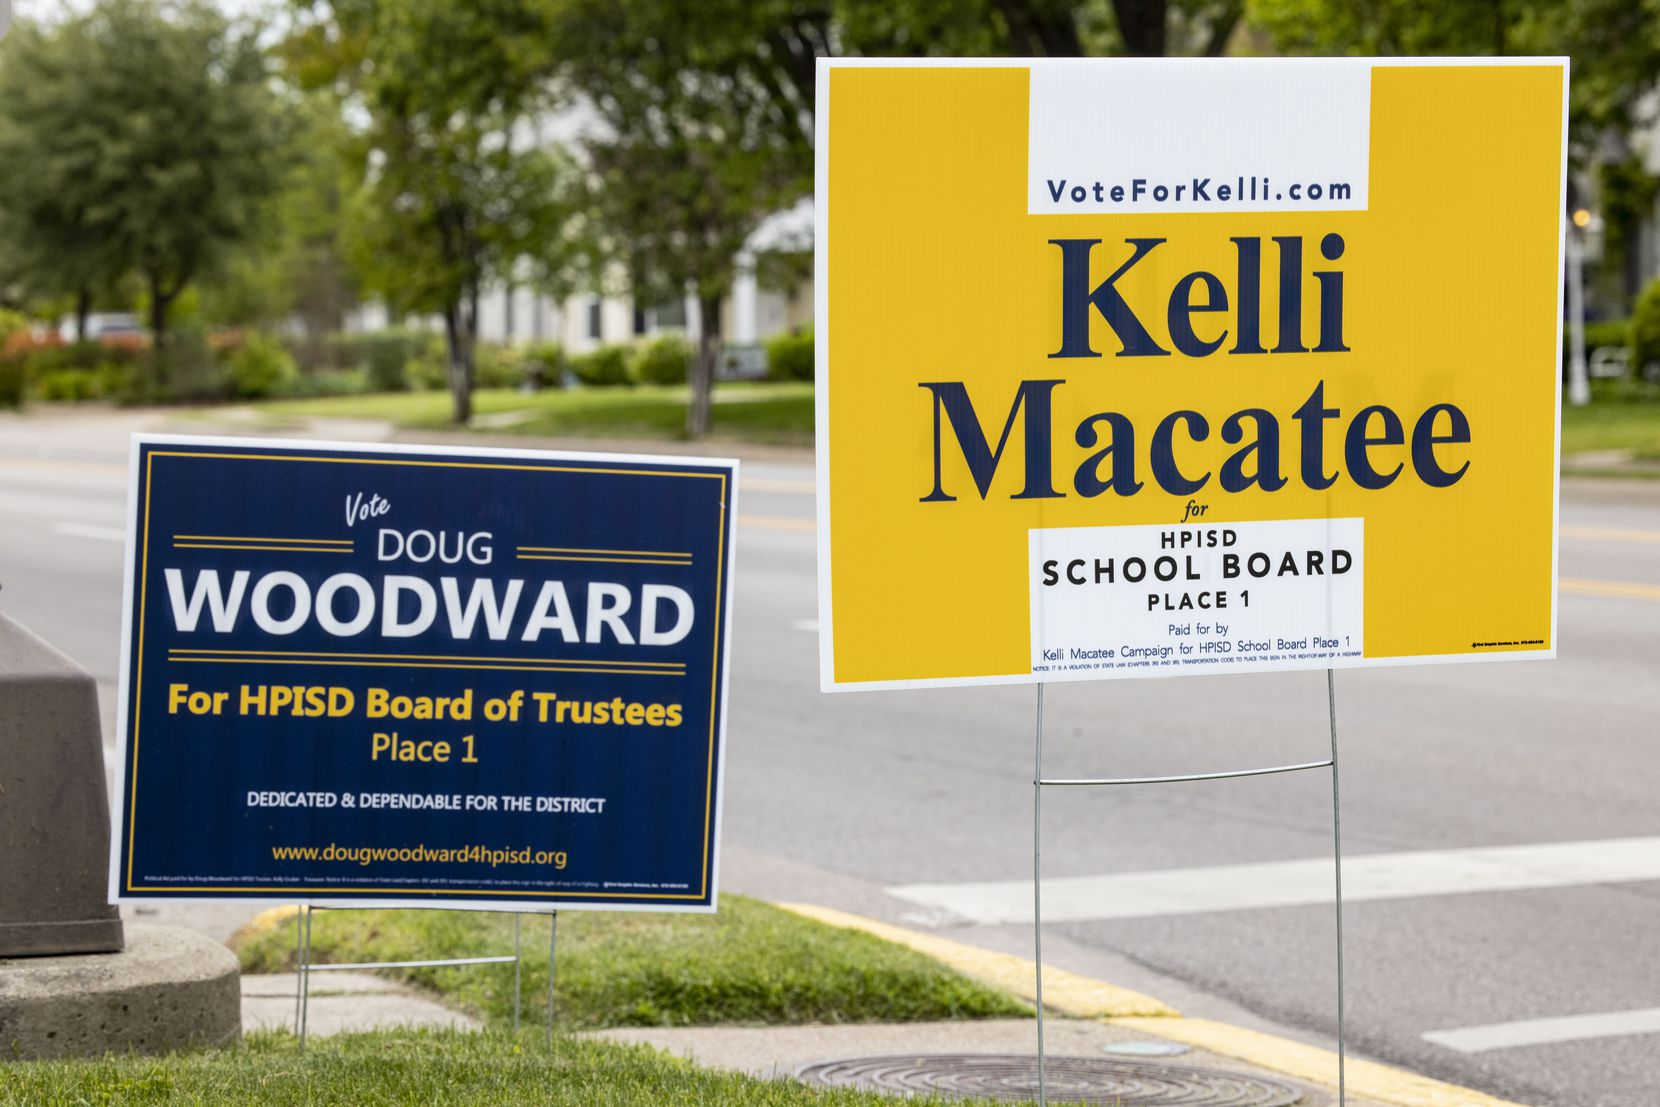 Kellie Macatee and Doug Woodward campaign signs photographed outside of the Highland Park ISD administration building on Wednesday, April 21, 2021, in Dallas. (Juan Figueroa / The Dallas Morning News)